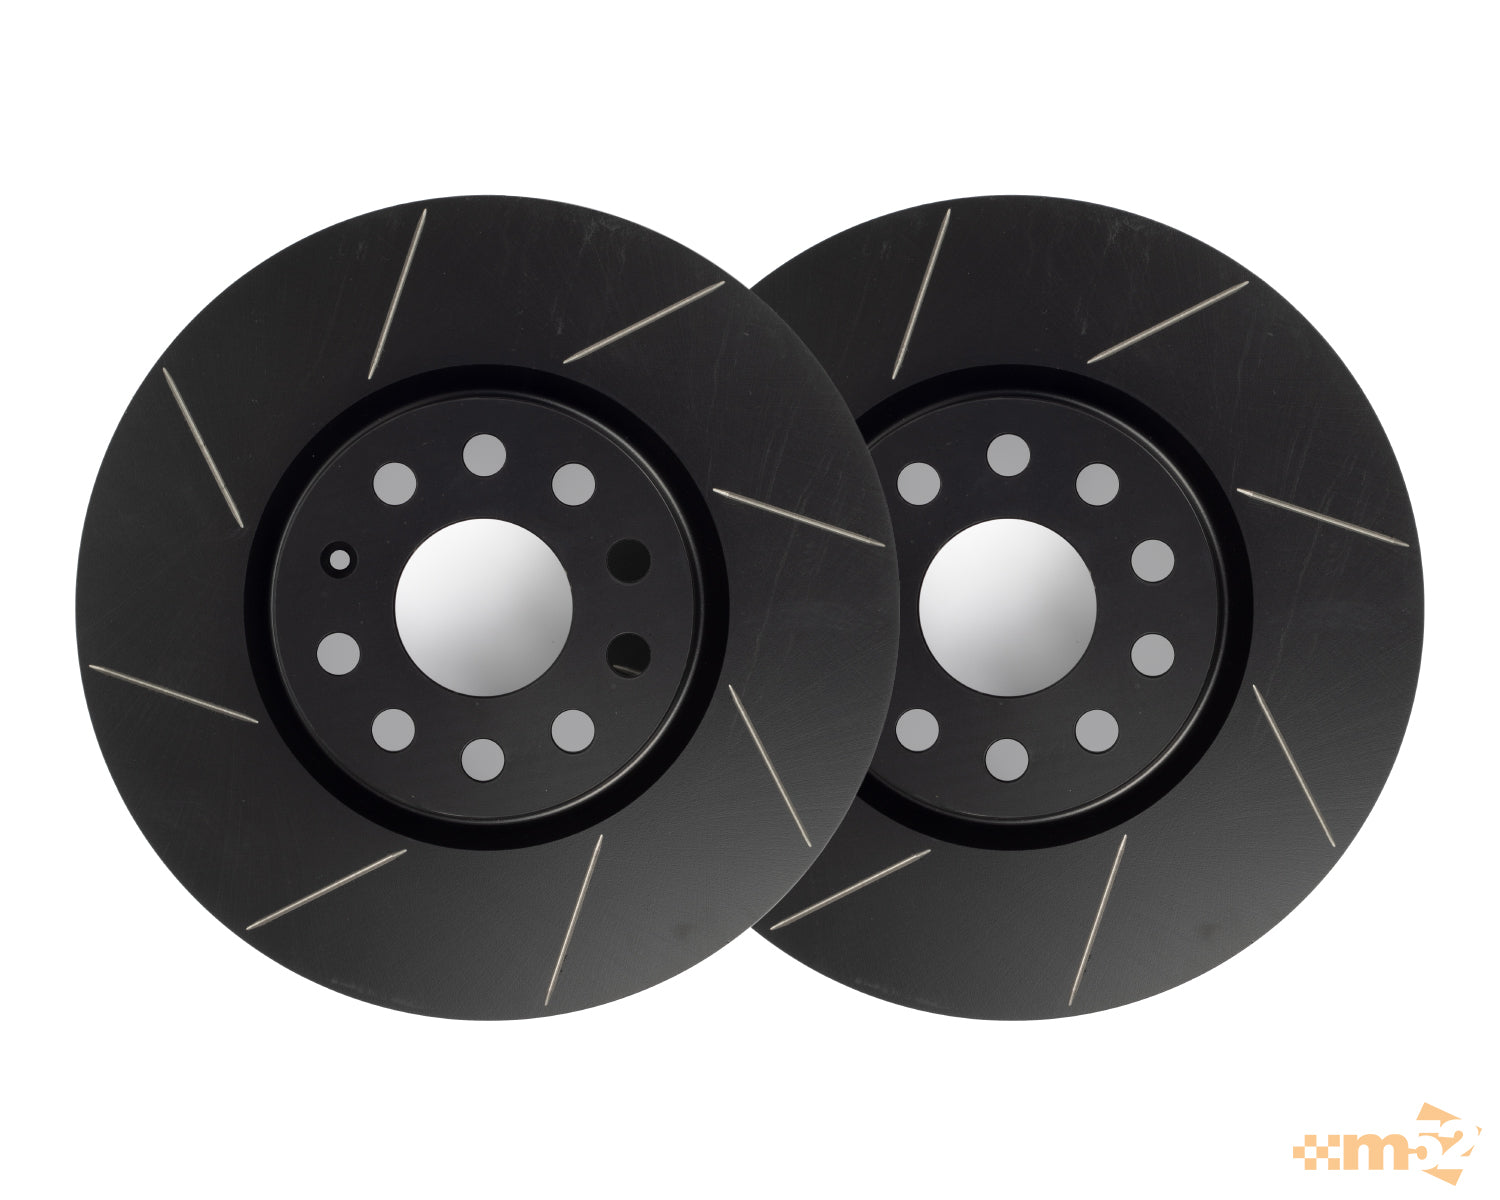 m52 Performance Front Brake Discs - mountune52